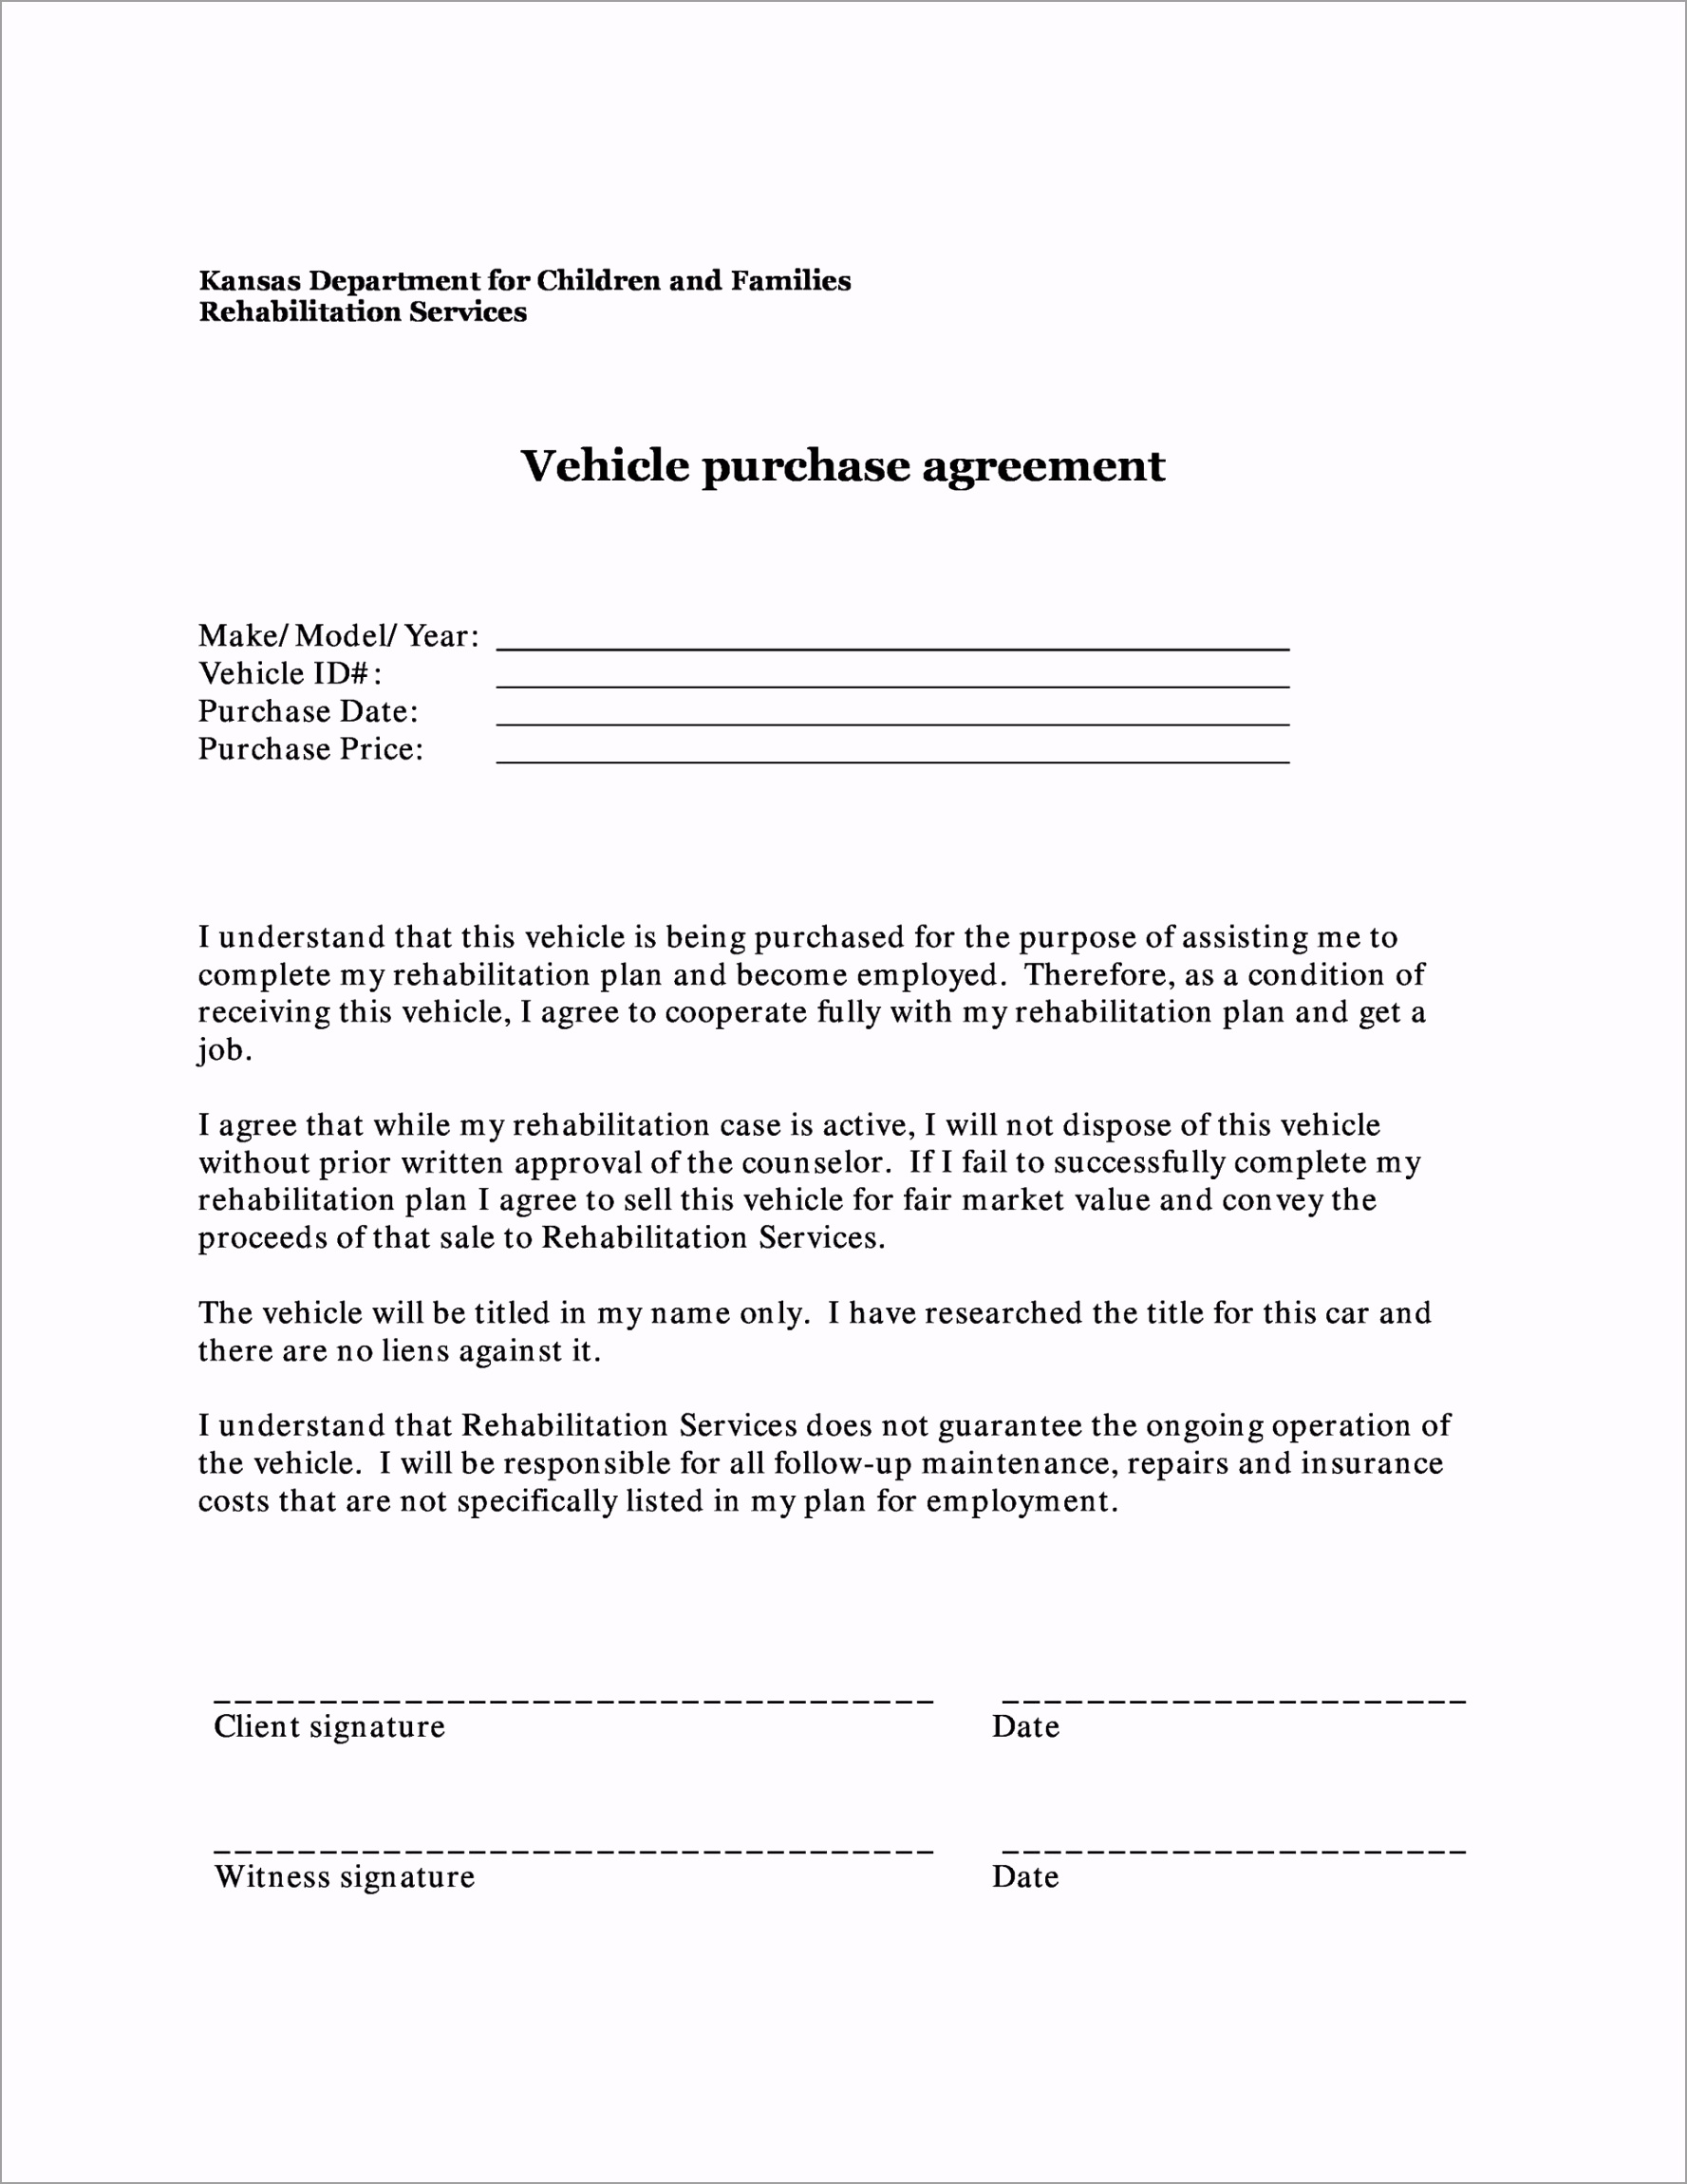 vehicle purchase agreement 07 wriew